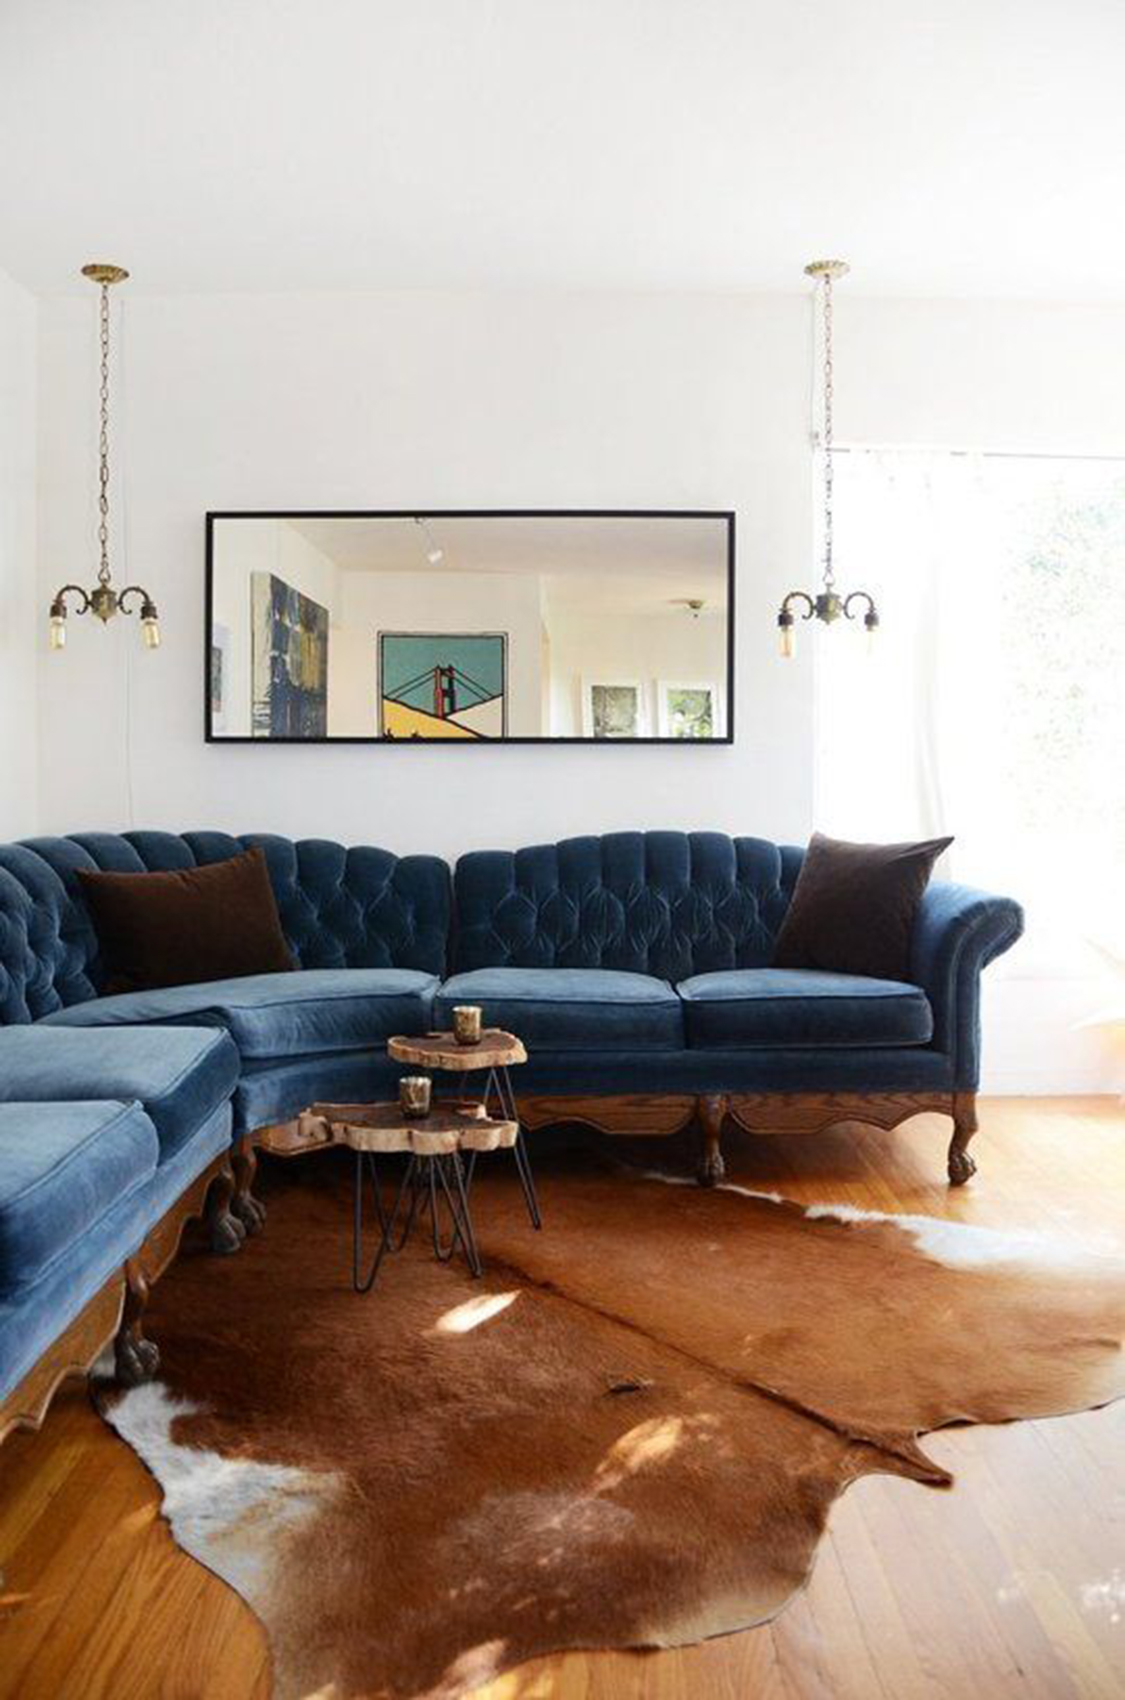 5 WAYS TO ADD VELVET GLAMOUR TO YOUR HOME DECOR